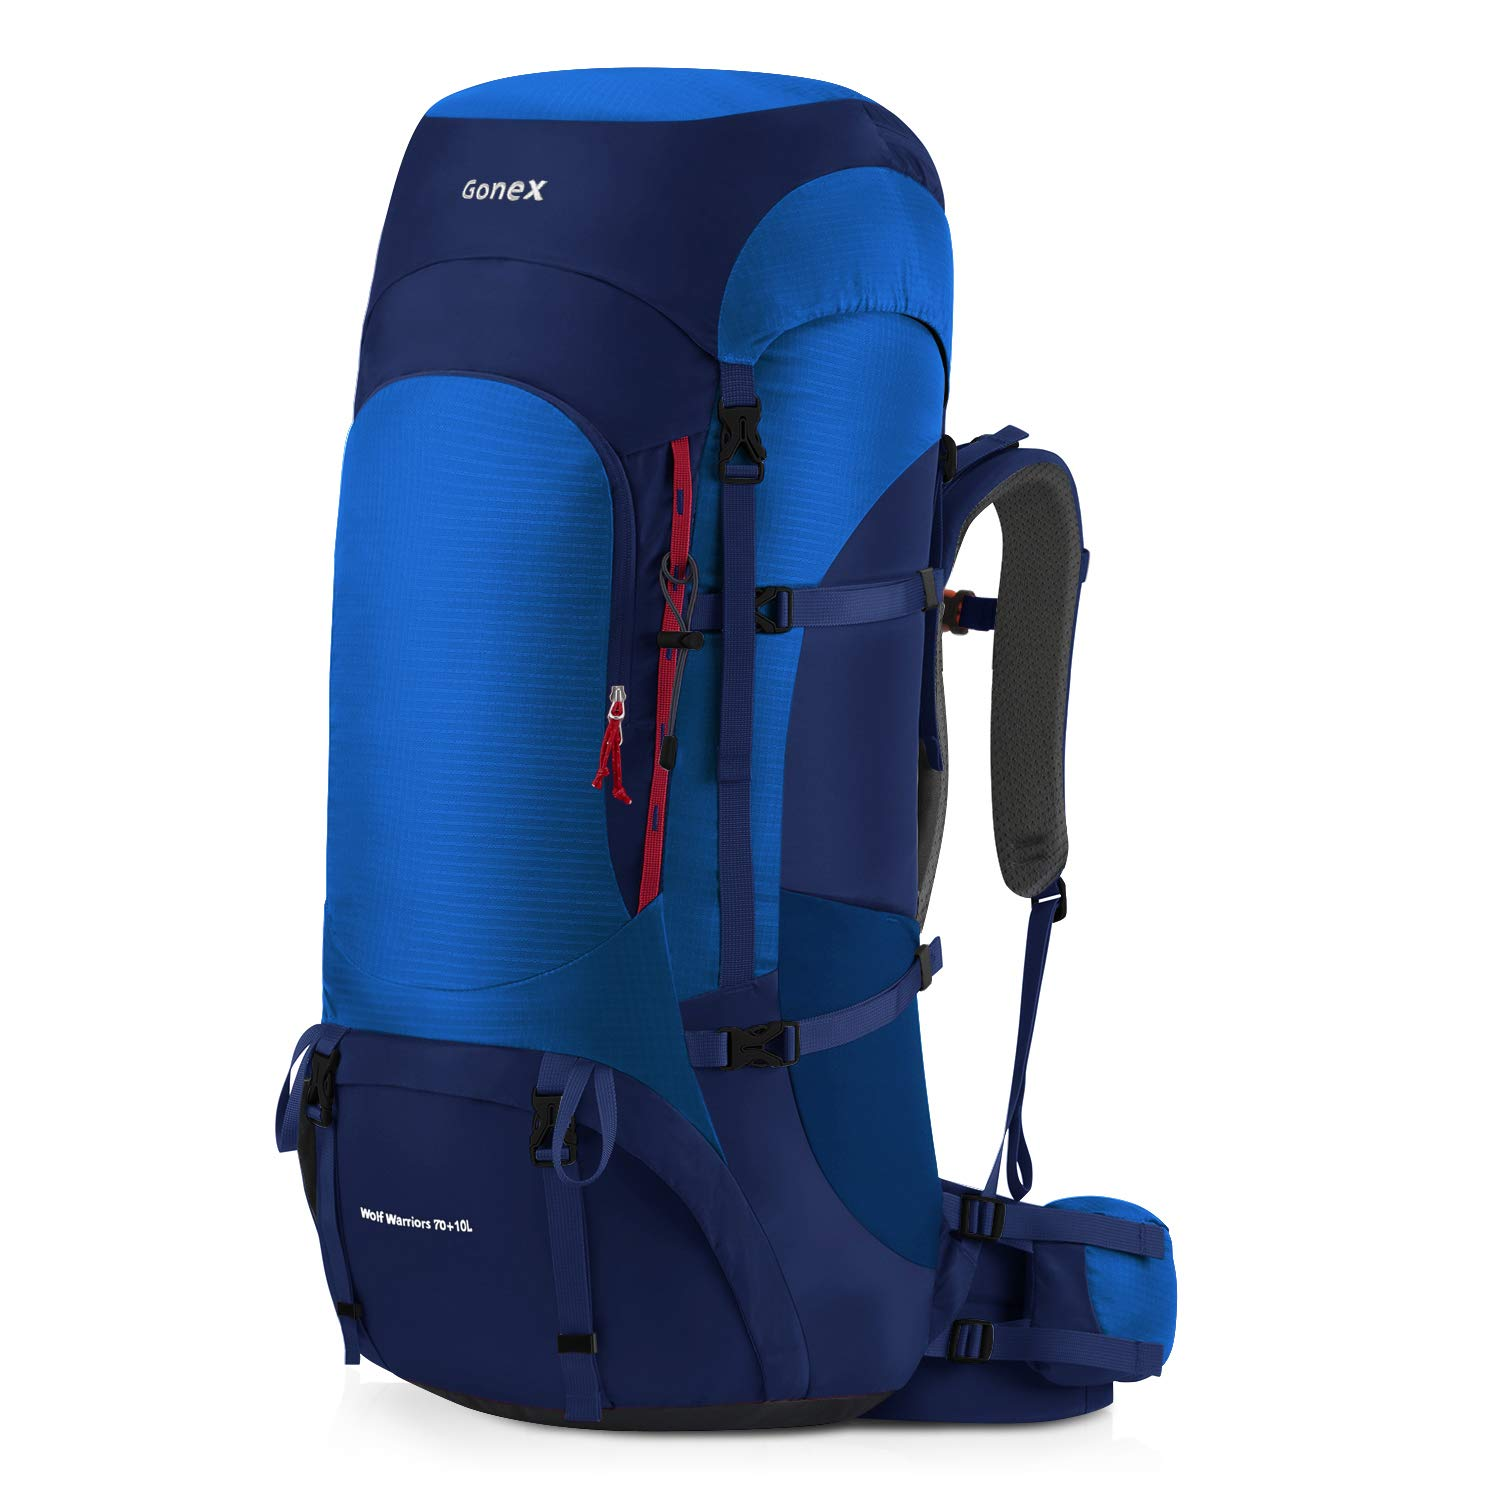 blueee Gonex 70L 80L Internal Frame Backpack for Backpacking Hiking Traveling Mountaineering Rain Cover Included